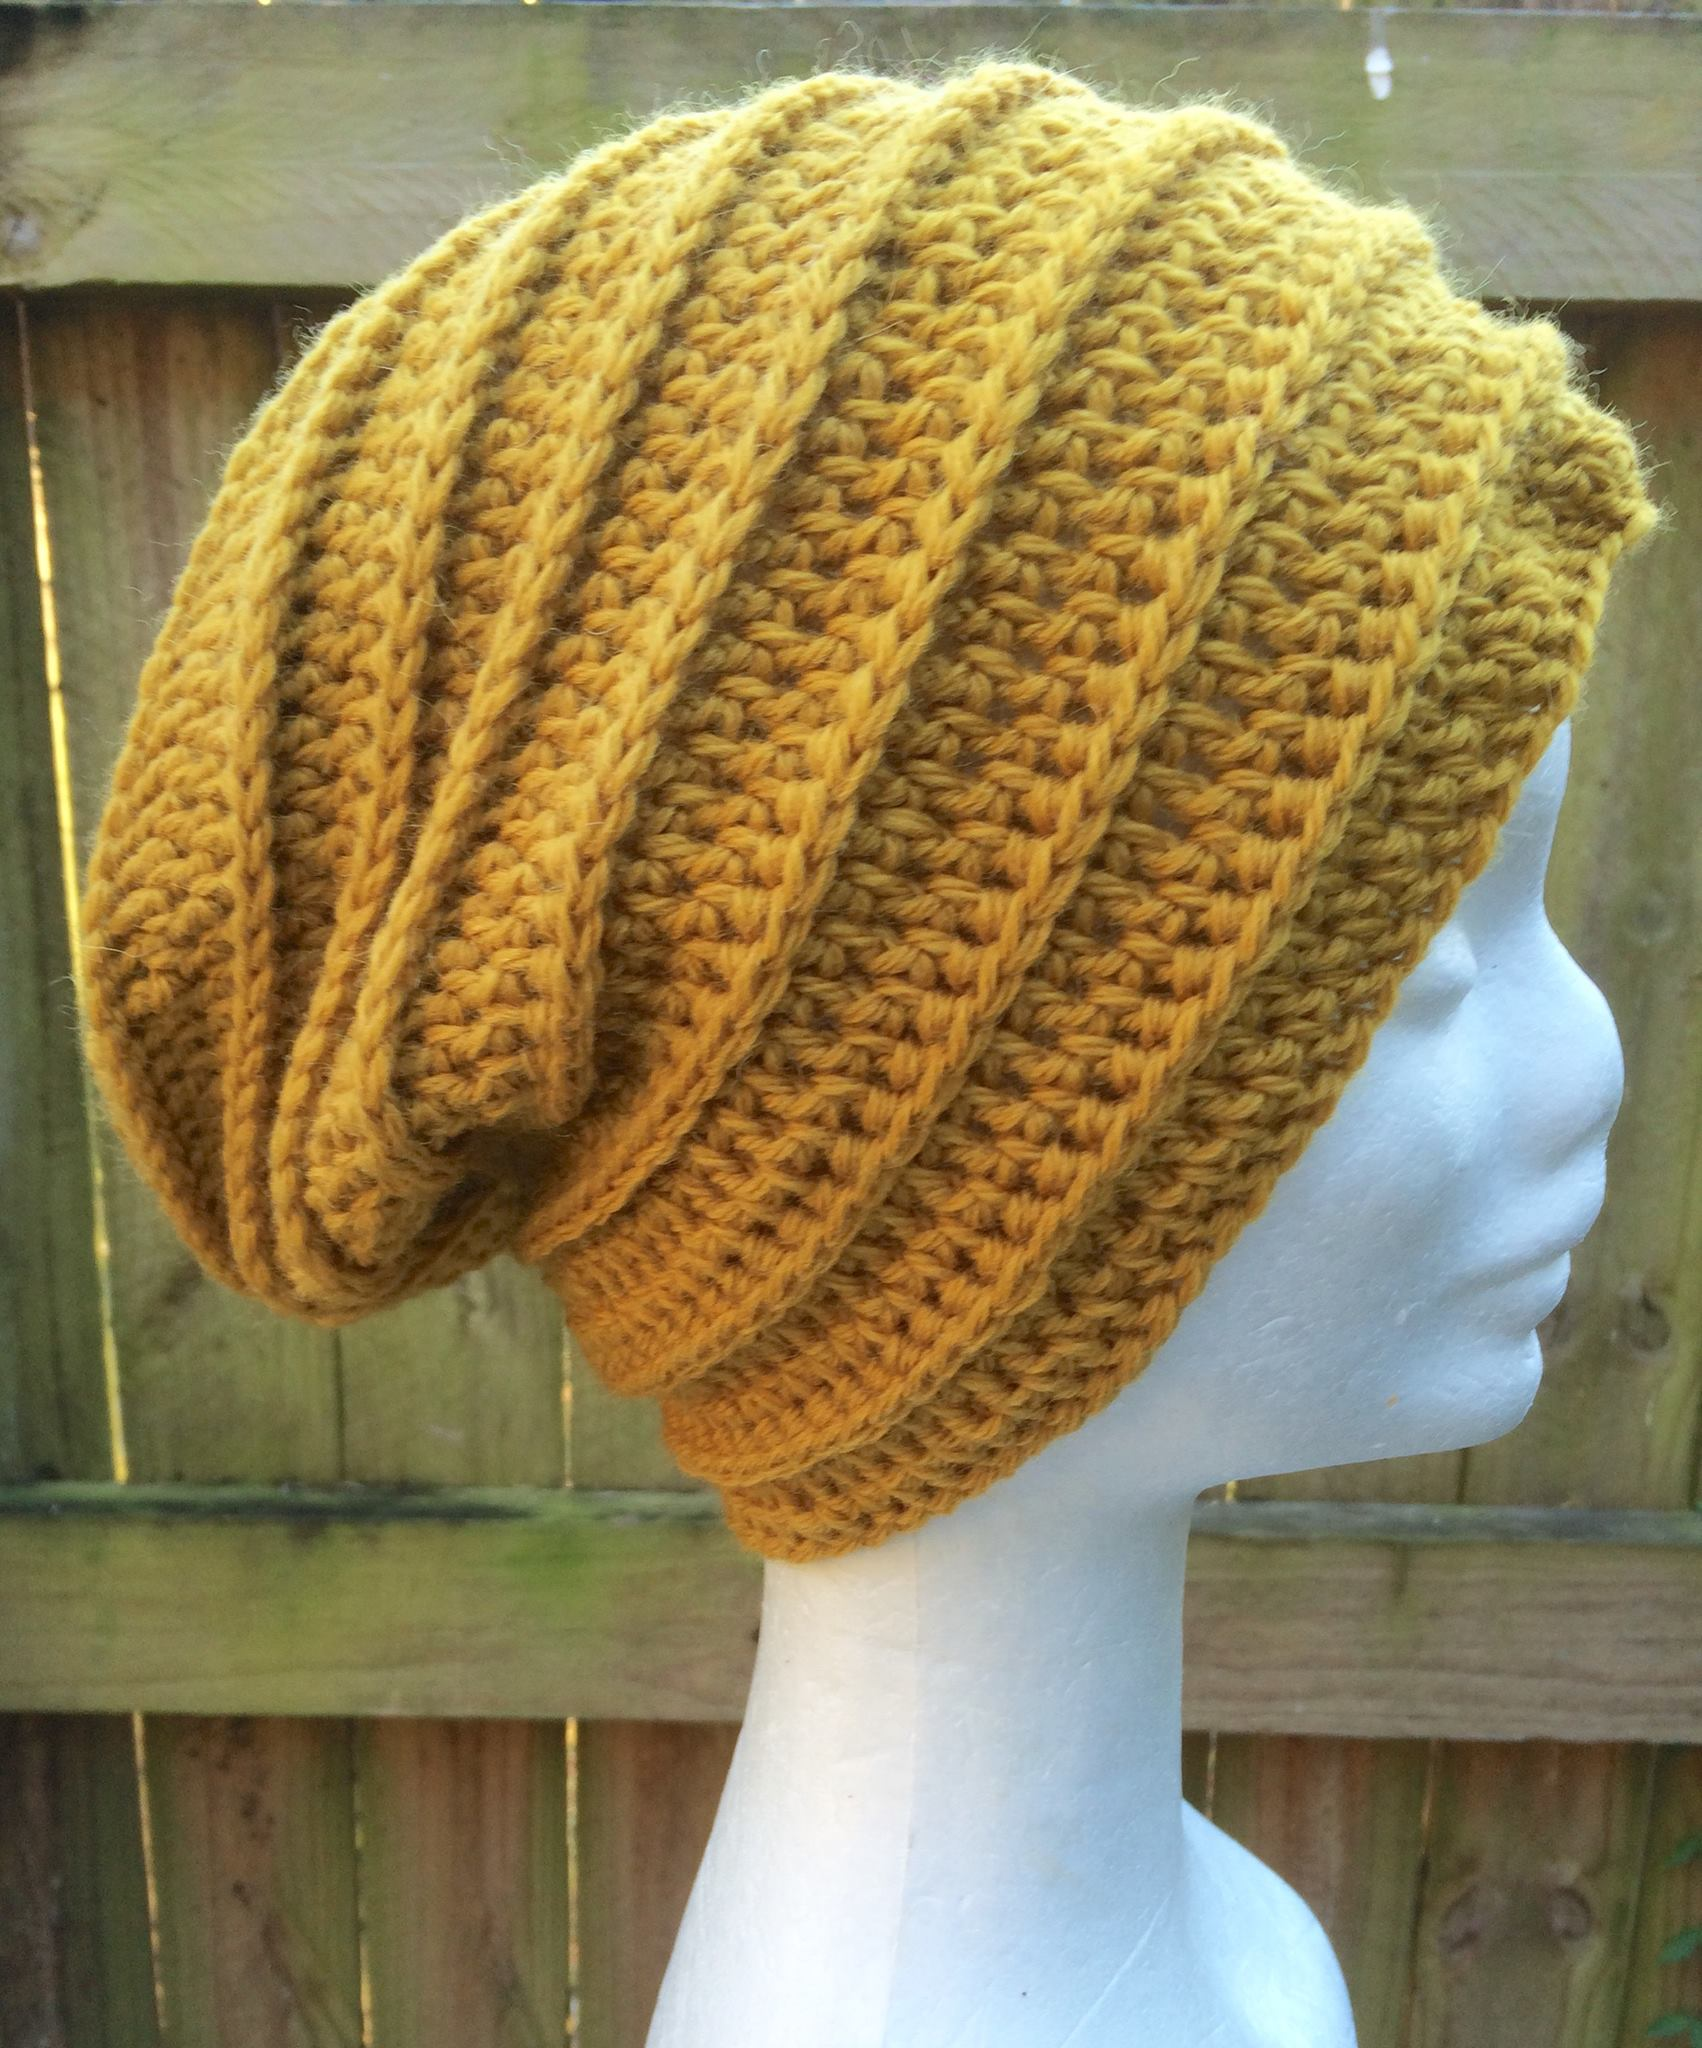 5af8445a42a Crocheted Slouchy beanie in mustard yellow with a textured ribbed ...